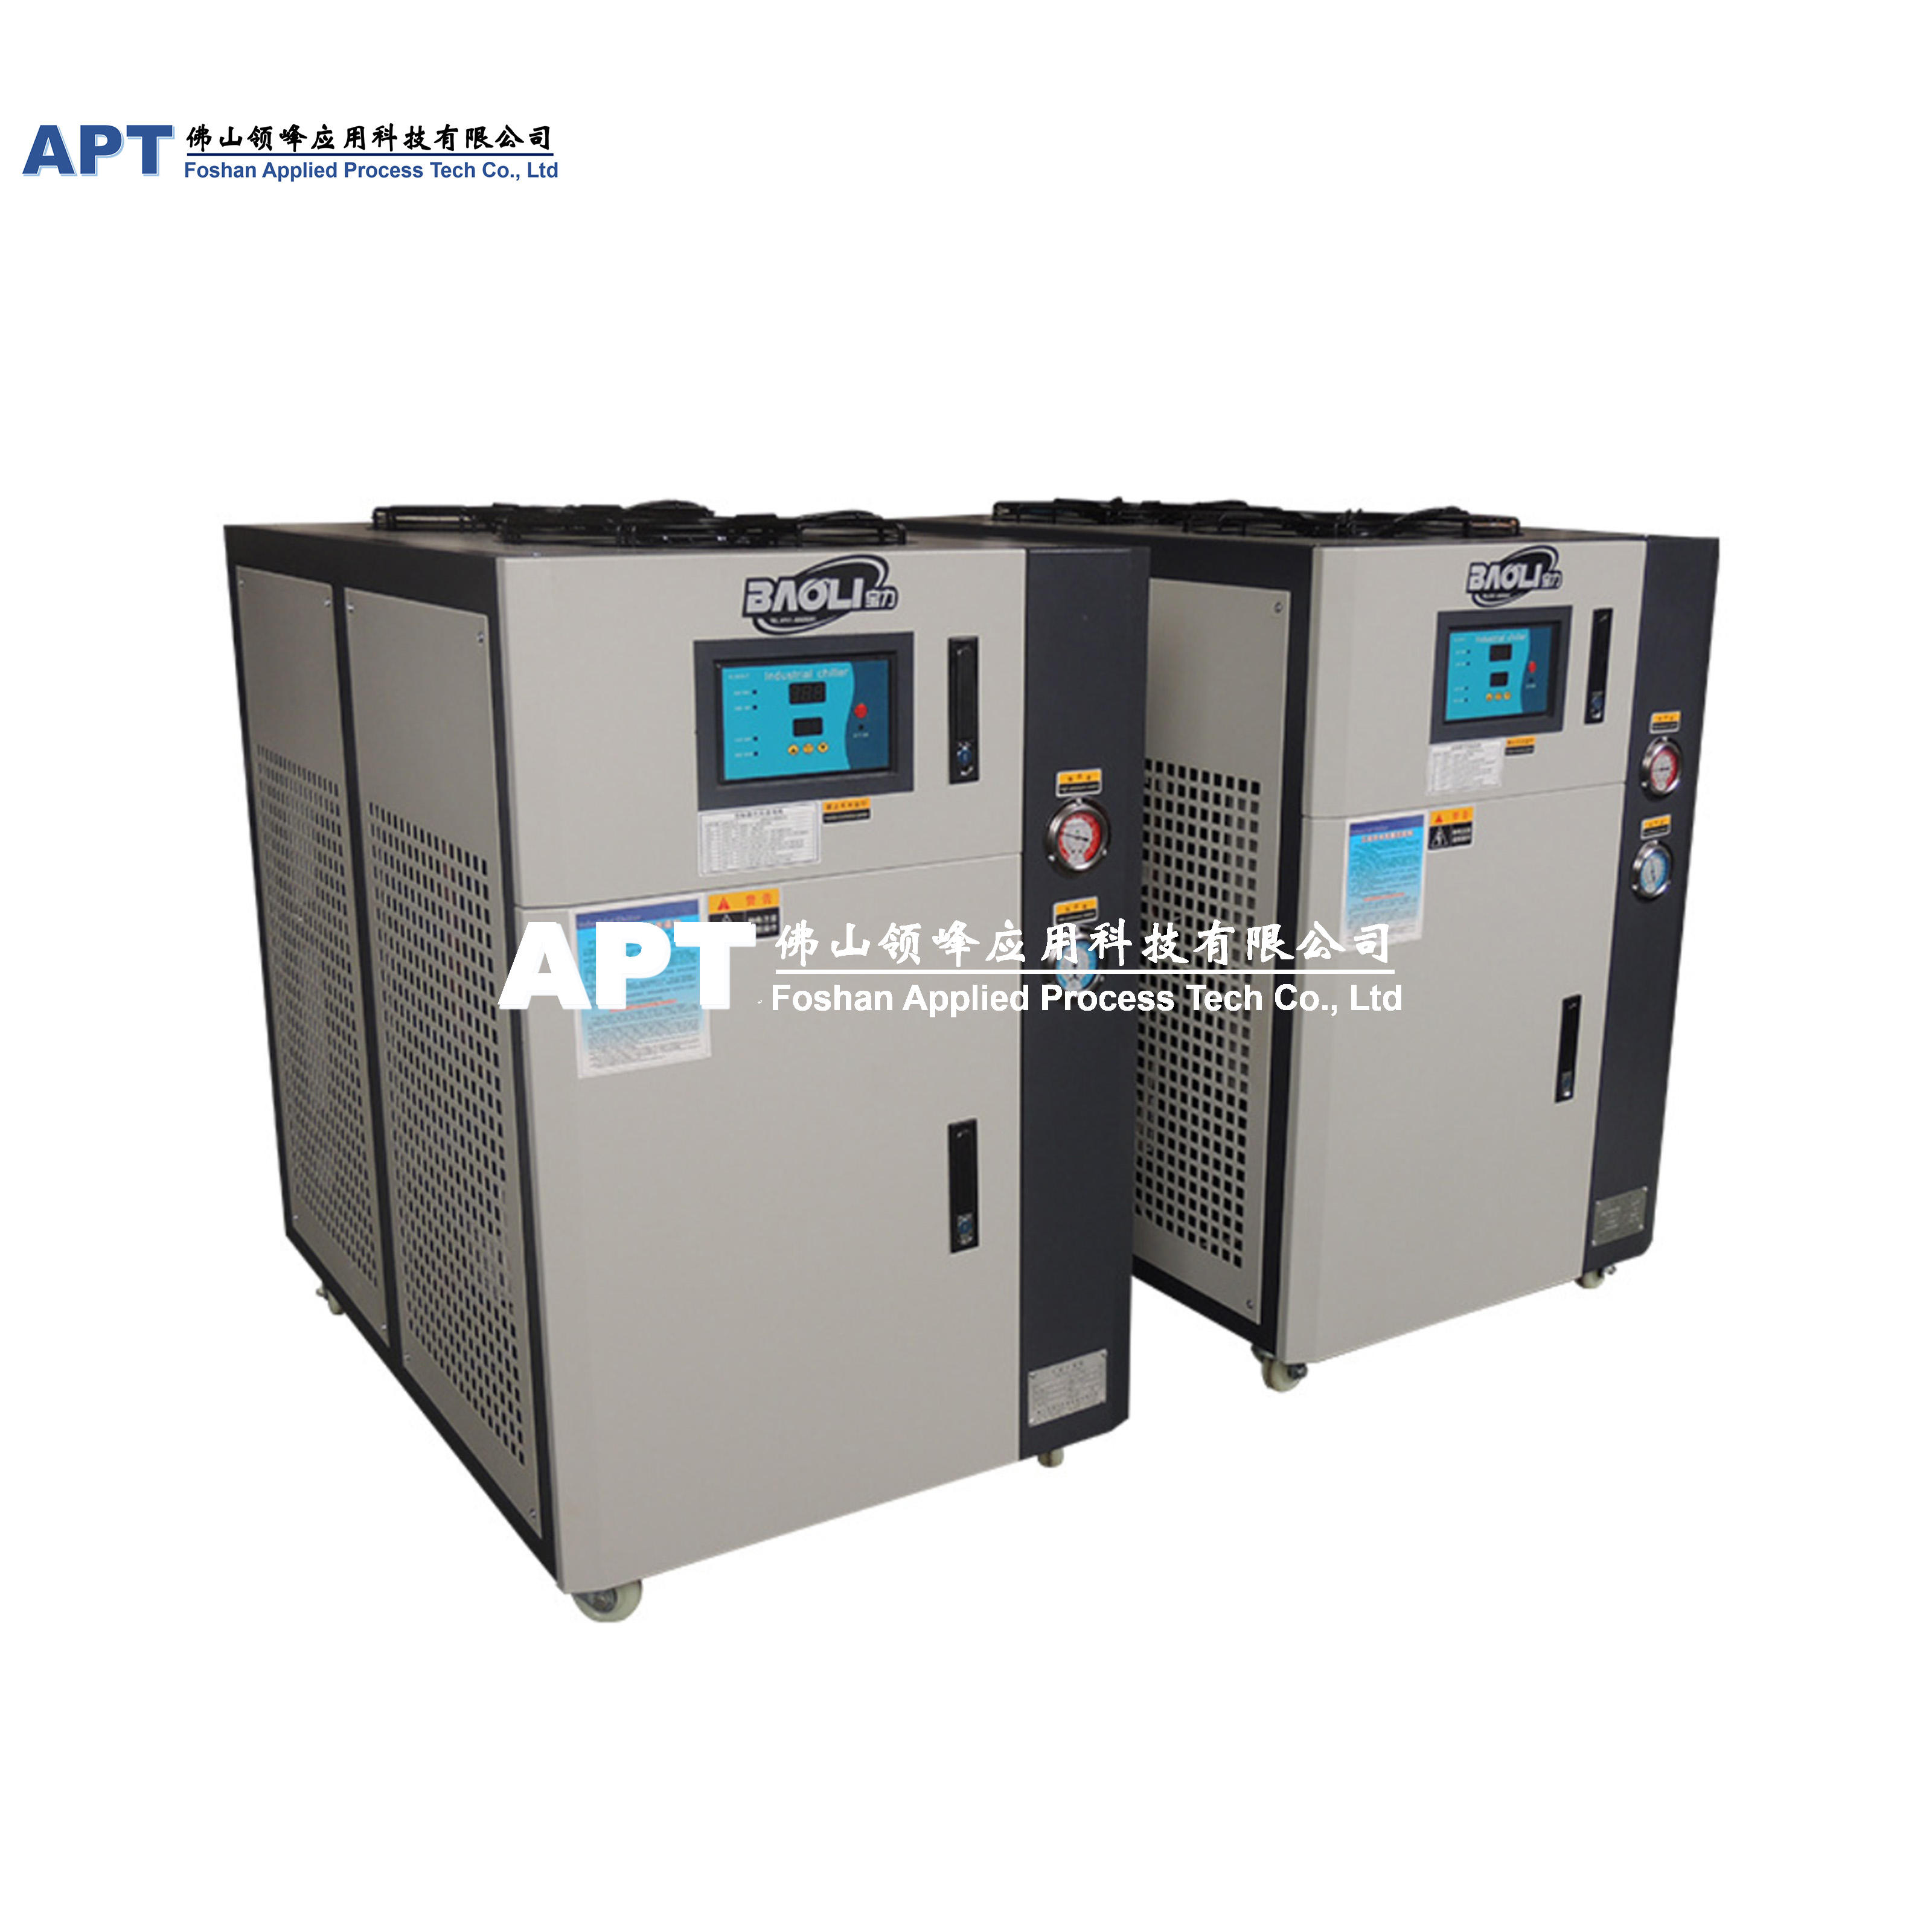 15KW Industrial Cool System Air-cooled Water Chiller for juice production line with food grade quality